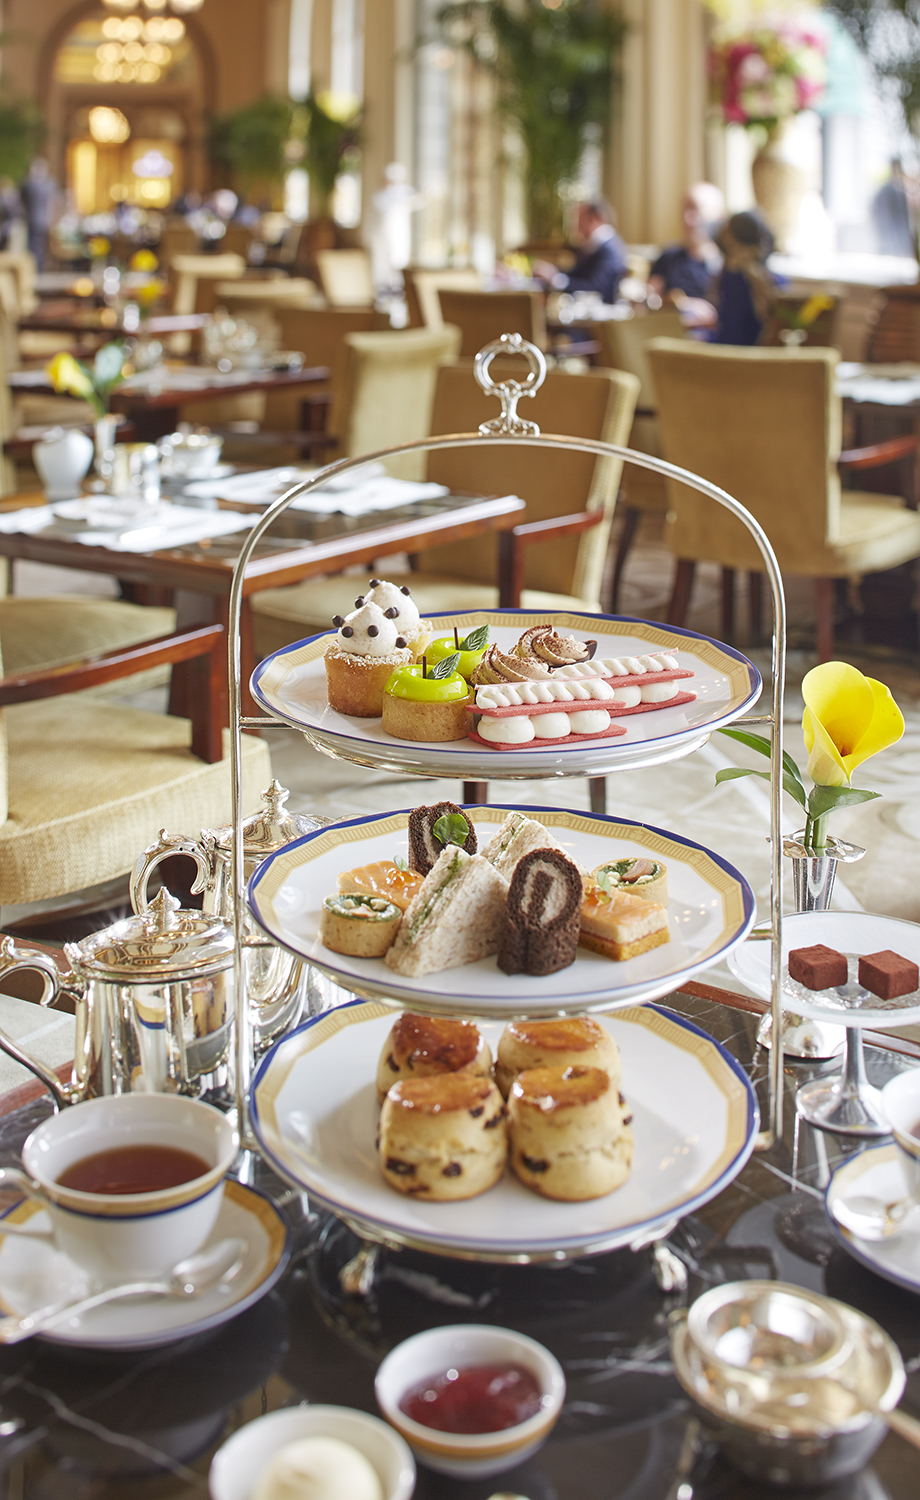 New Afternoon Tea (Q2 2017) LR.jpg